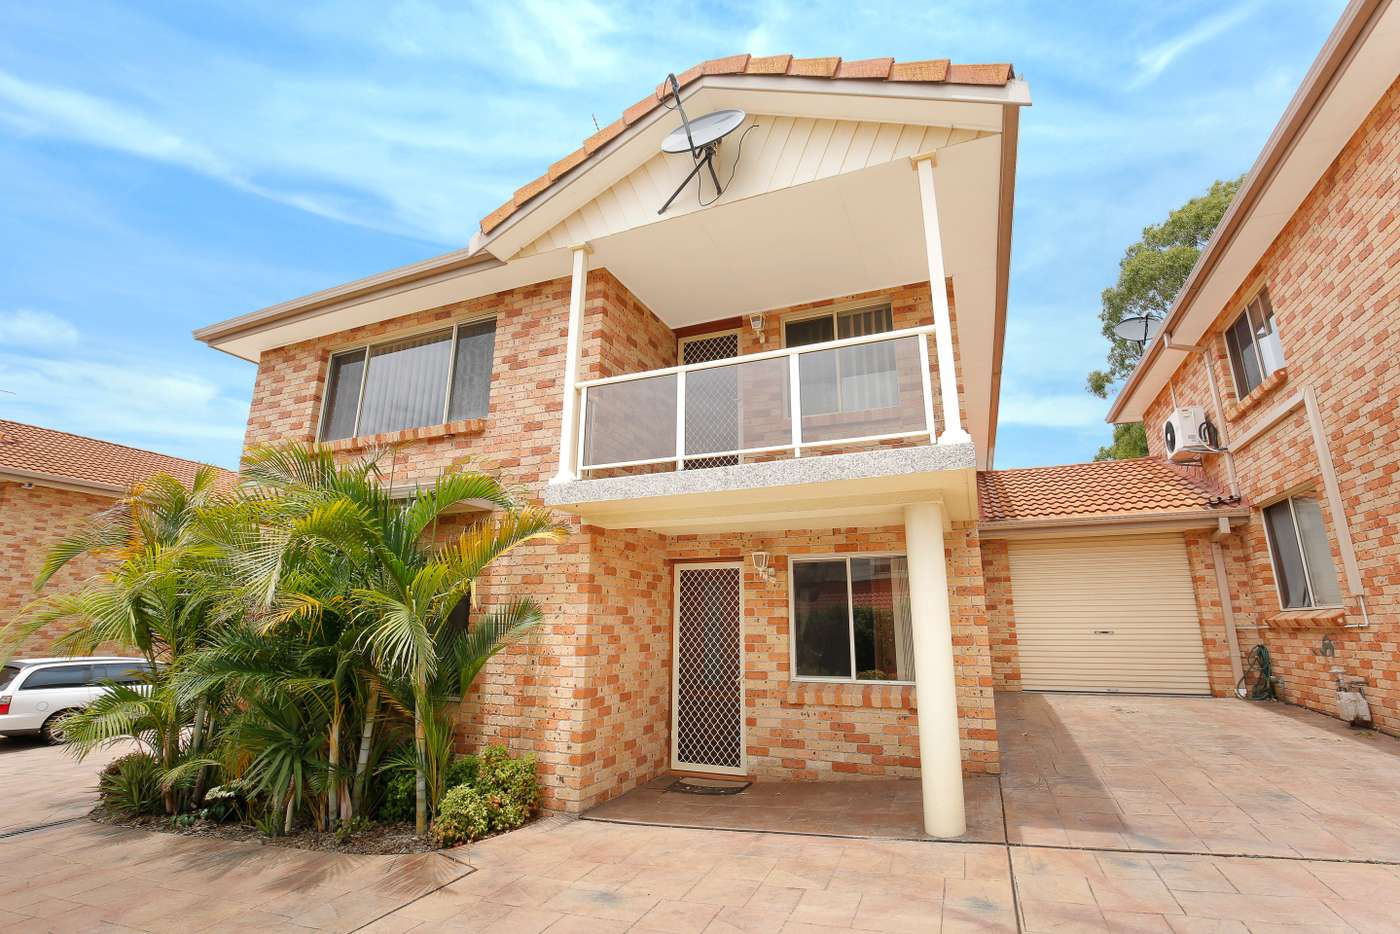 Main view of Homely townhouse listing, 2/19 Hillcrest Street, Wollongong NSW 2500